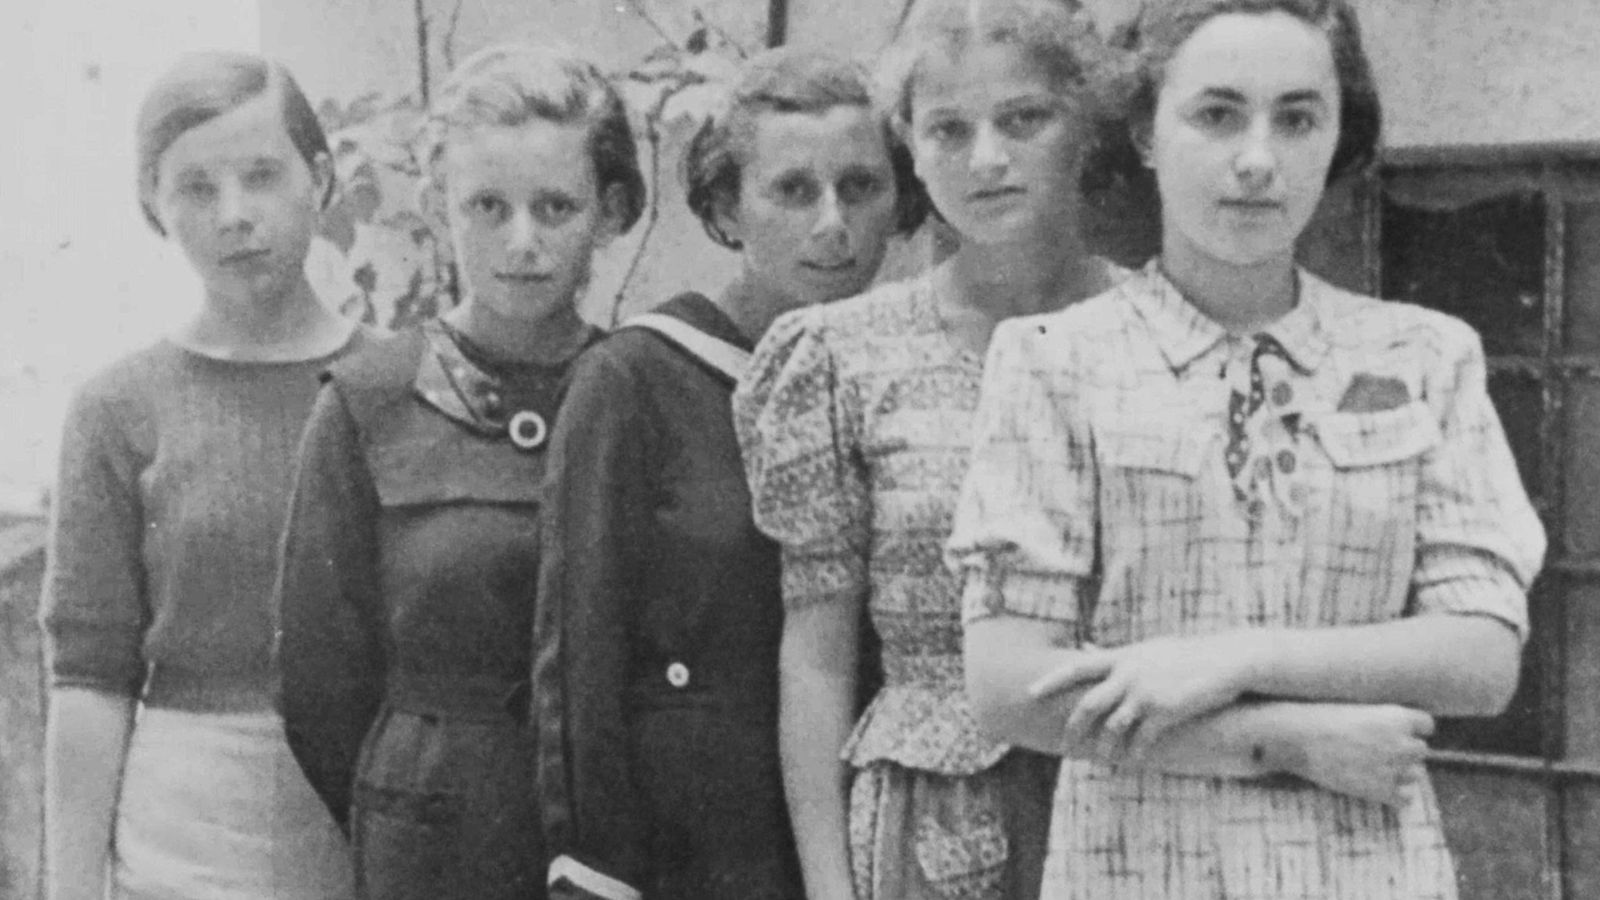 Two of the five girls in this photograph—taken in Humenné, Slovakia, around 1936—are known to have ...